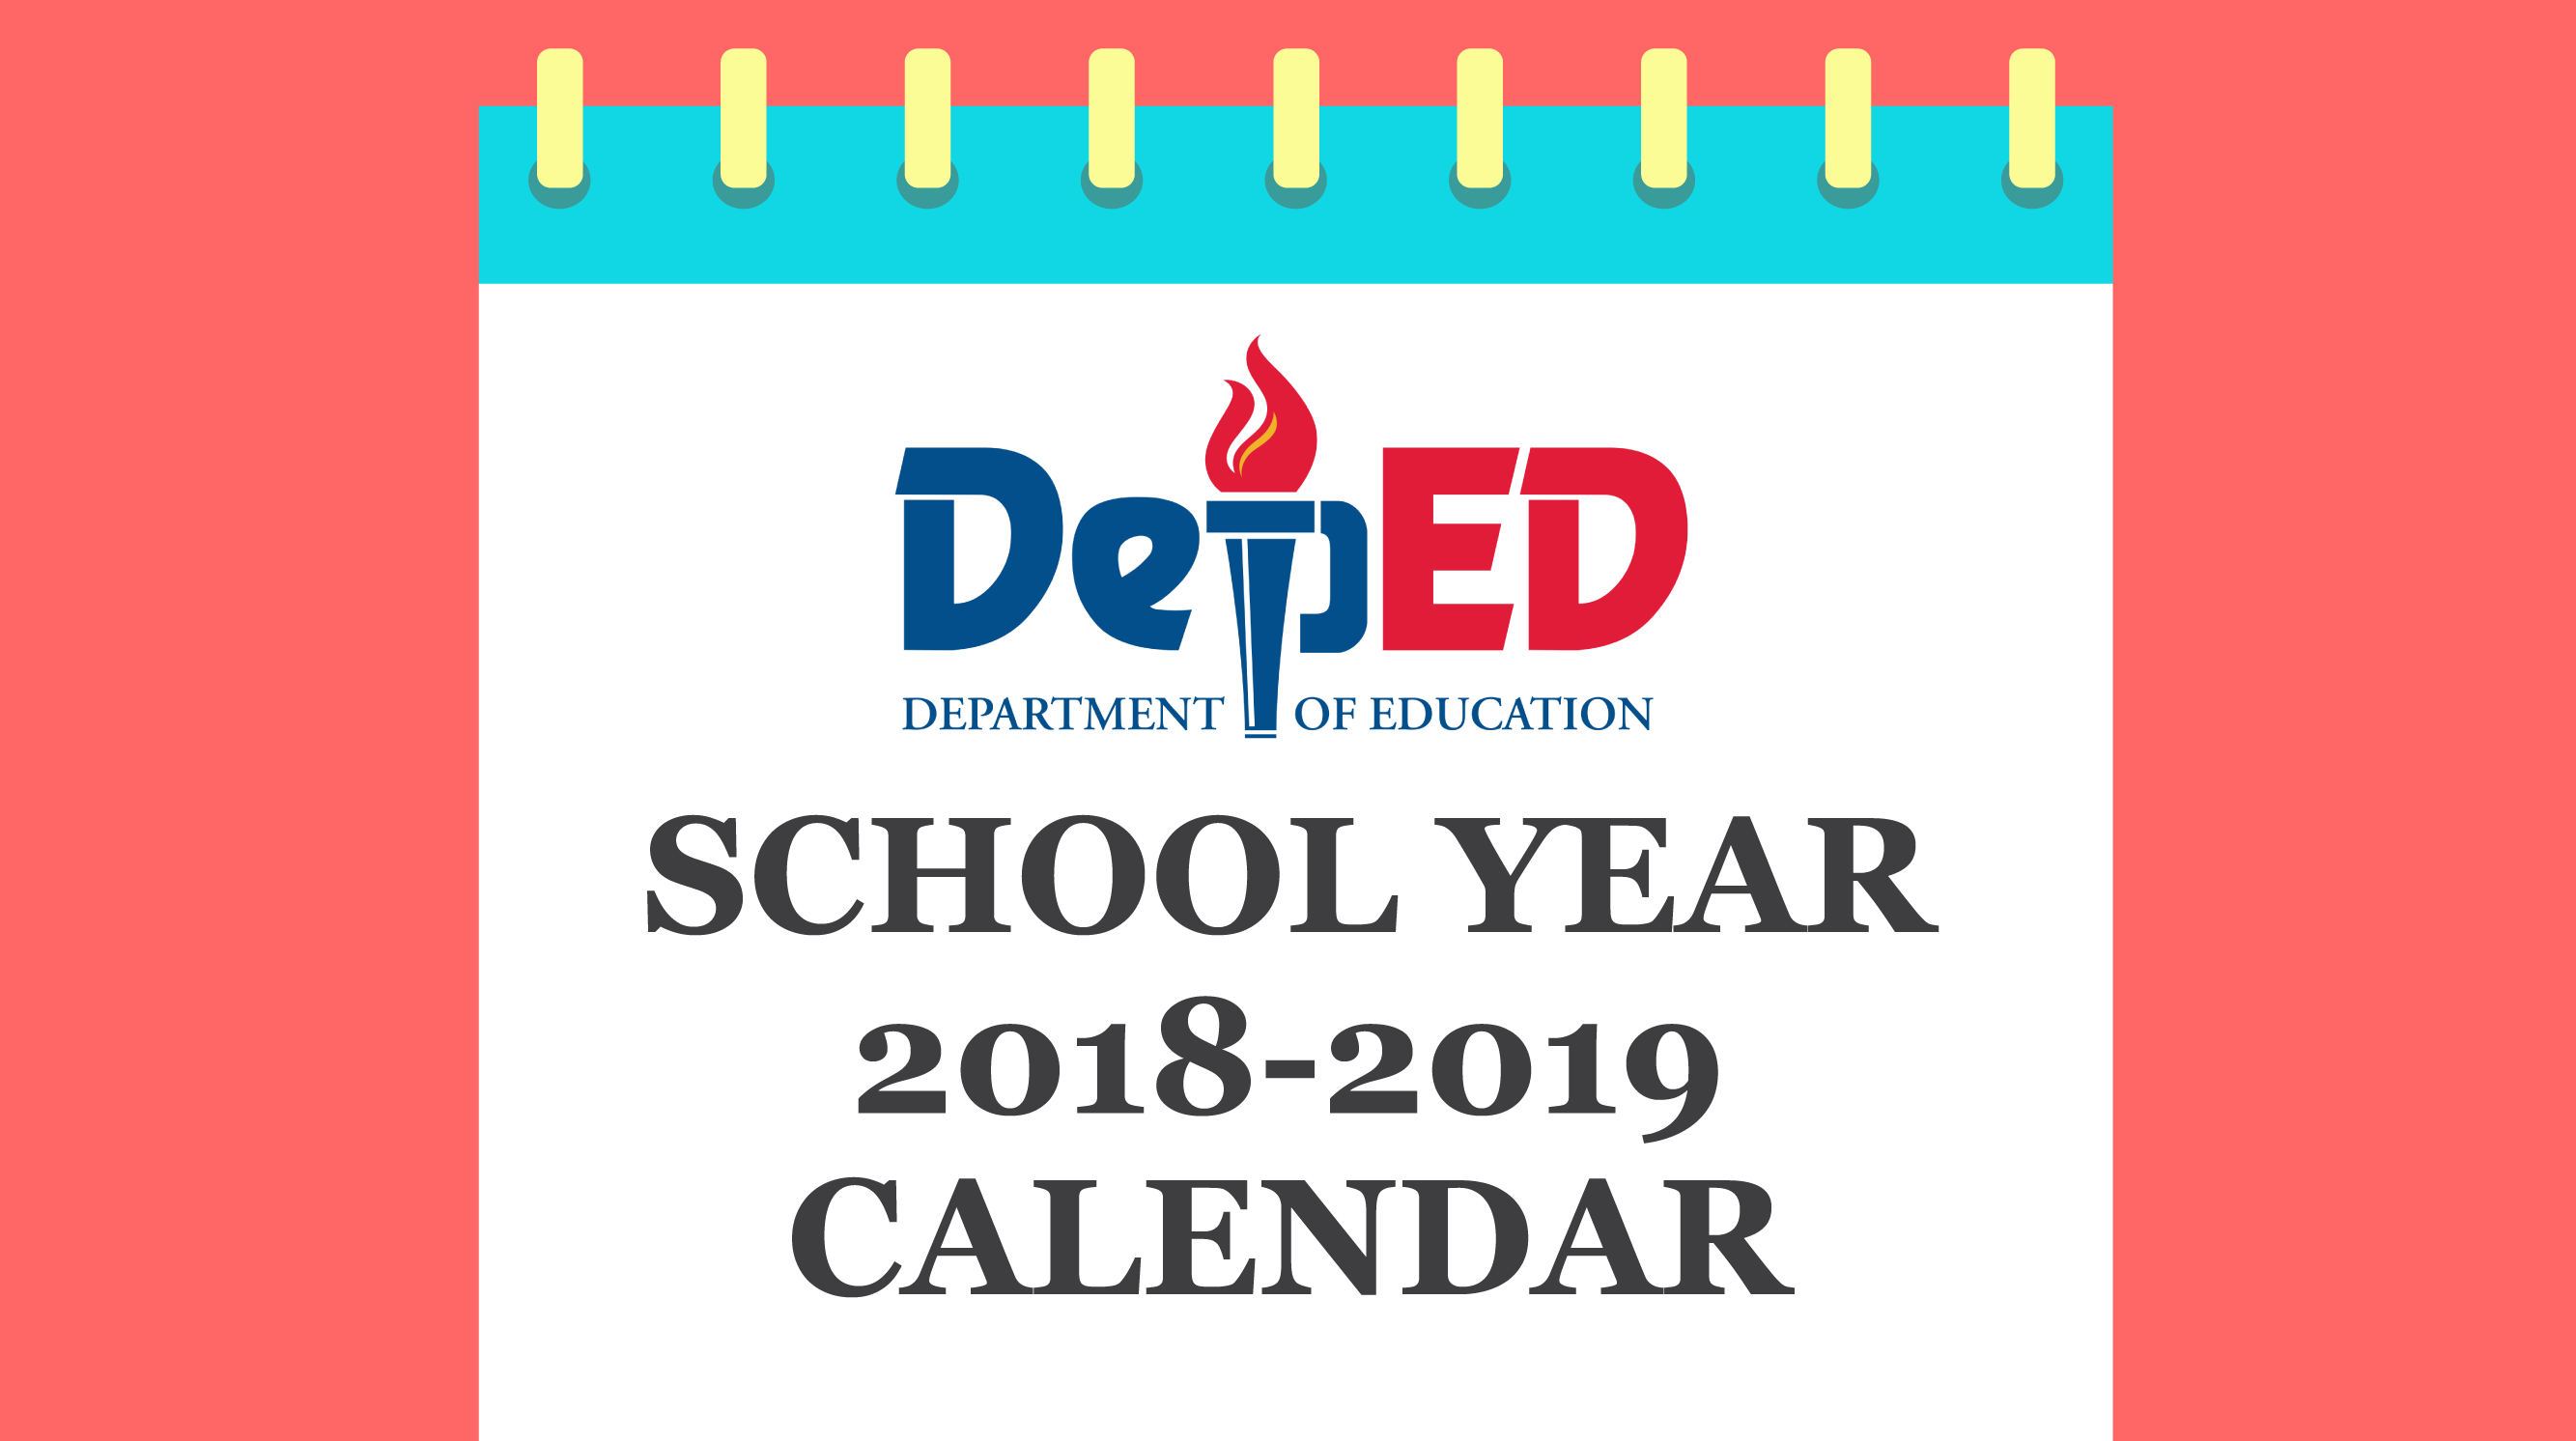 Deped Releases Calendar For School Year 2018 To 2019 Plus Holidays